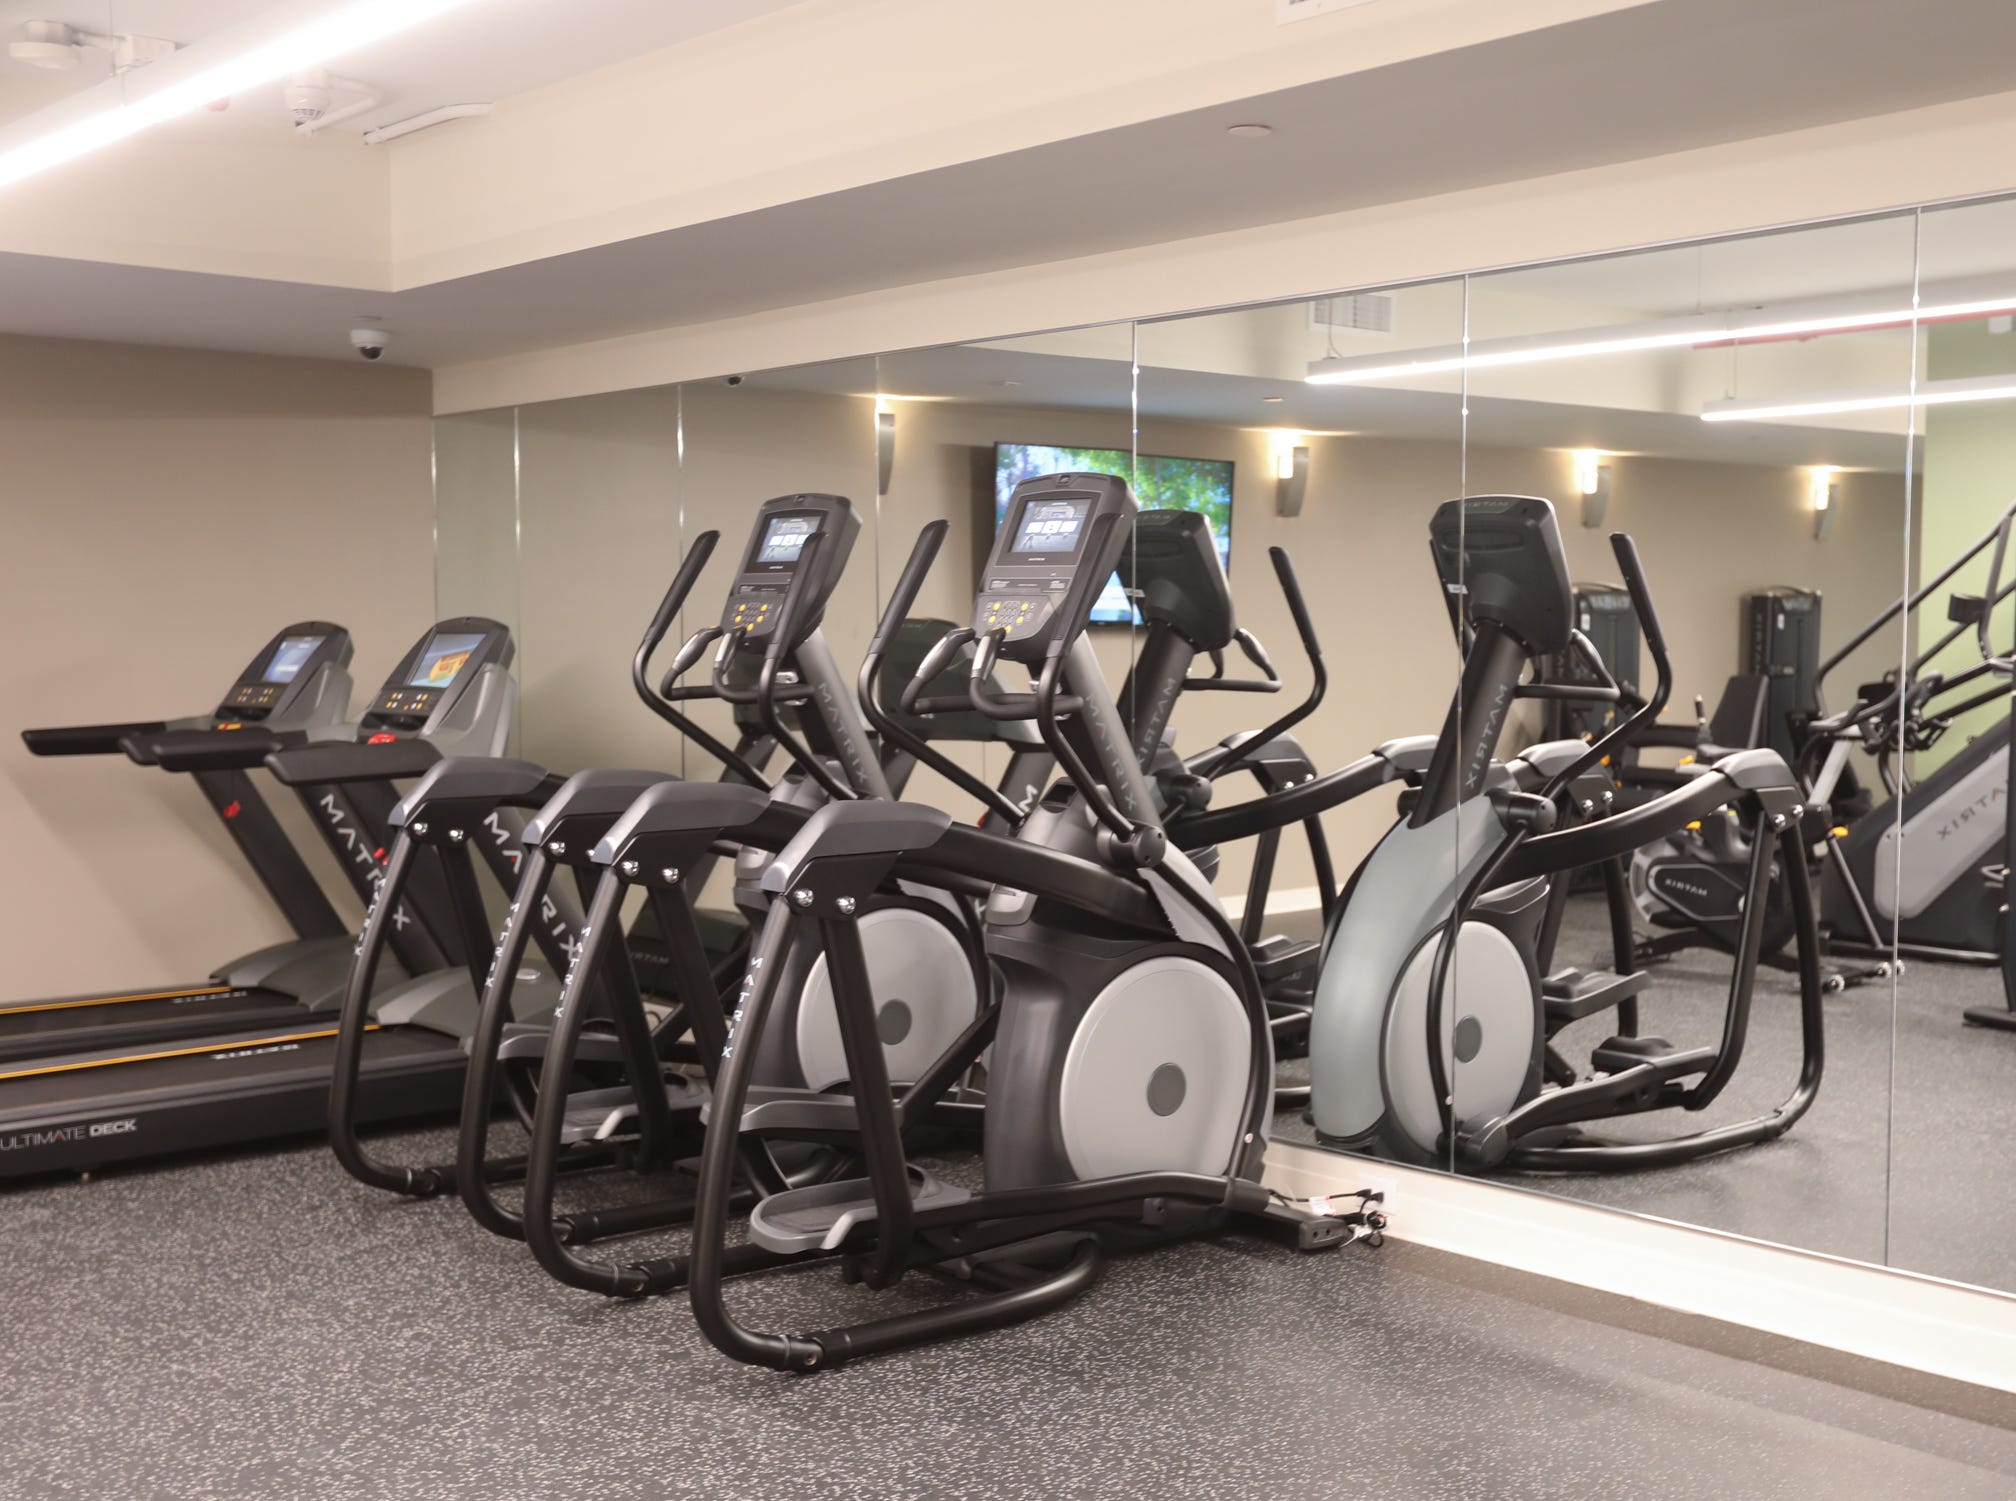 The gym at The River Club at Hudson Park in Yonkers on Friday, February 15, 2019.